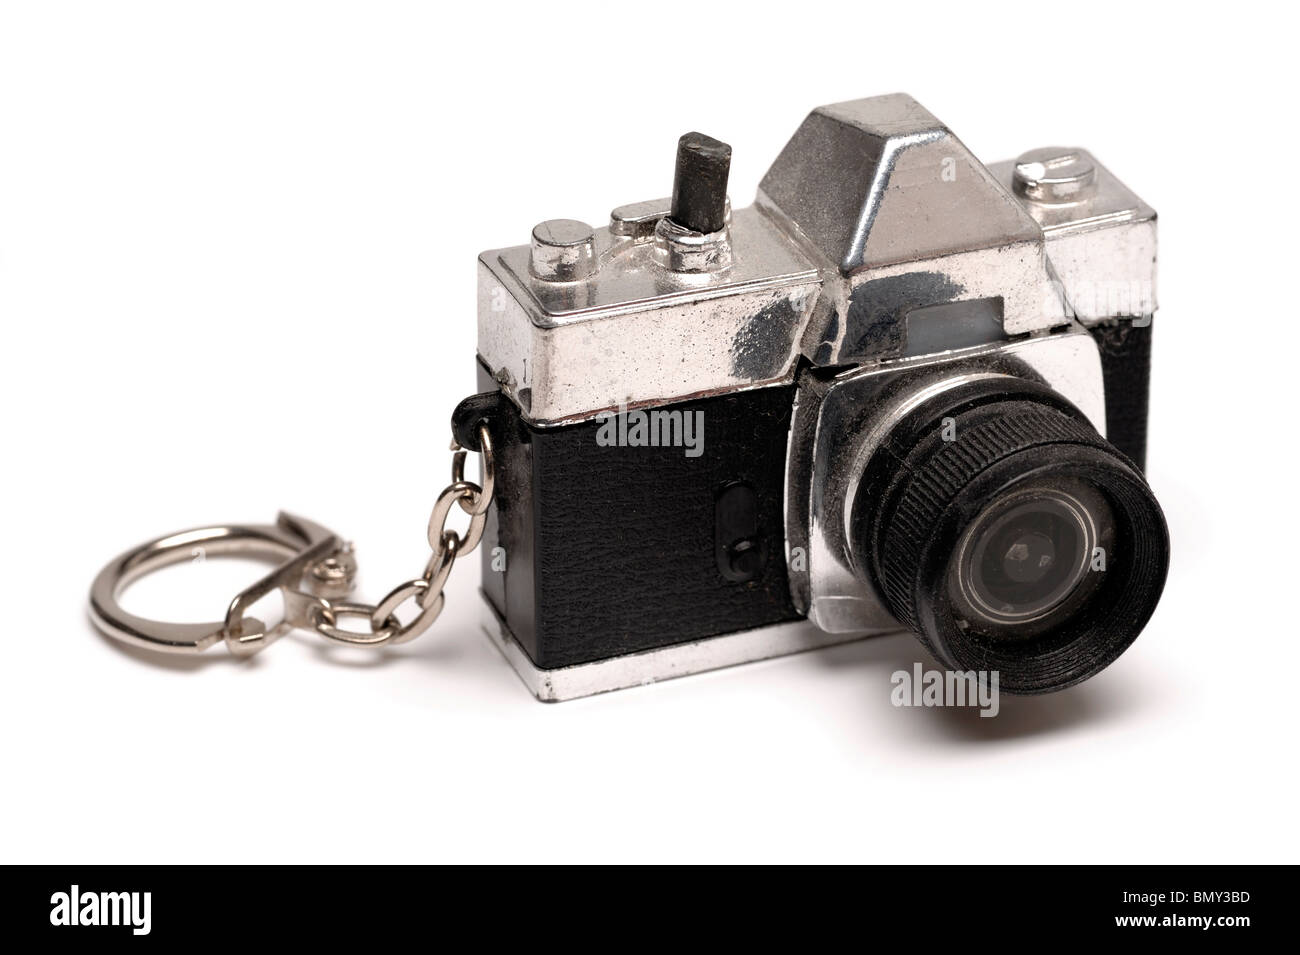 Mini toy camera keyring - Stock Image